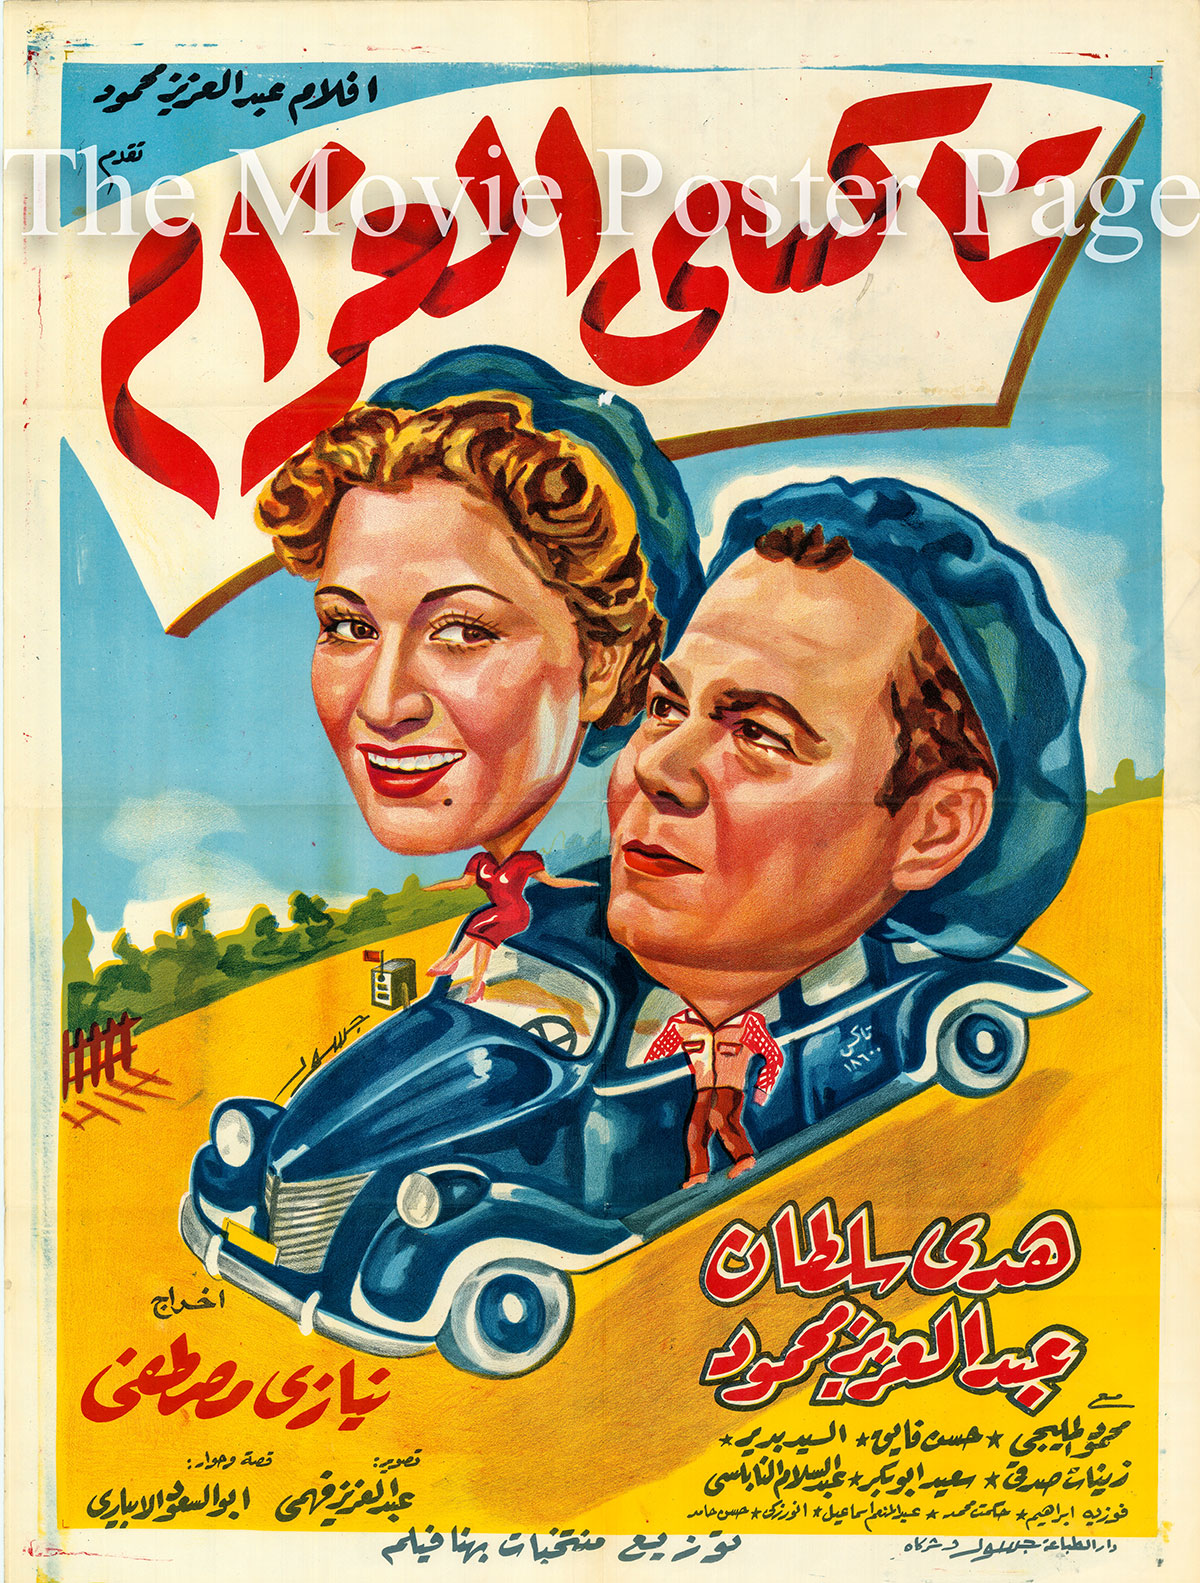 Pictured is an Egyptian promotional poster for the 1954 Niazi Mostafa film Love Taxi starring Hoda Soltan.